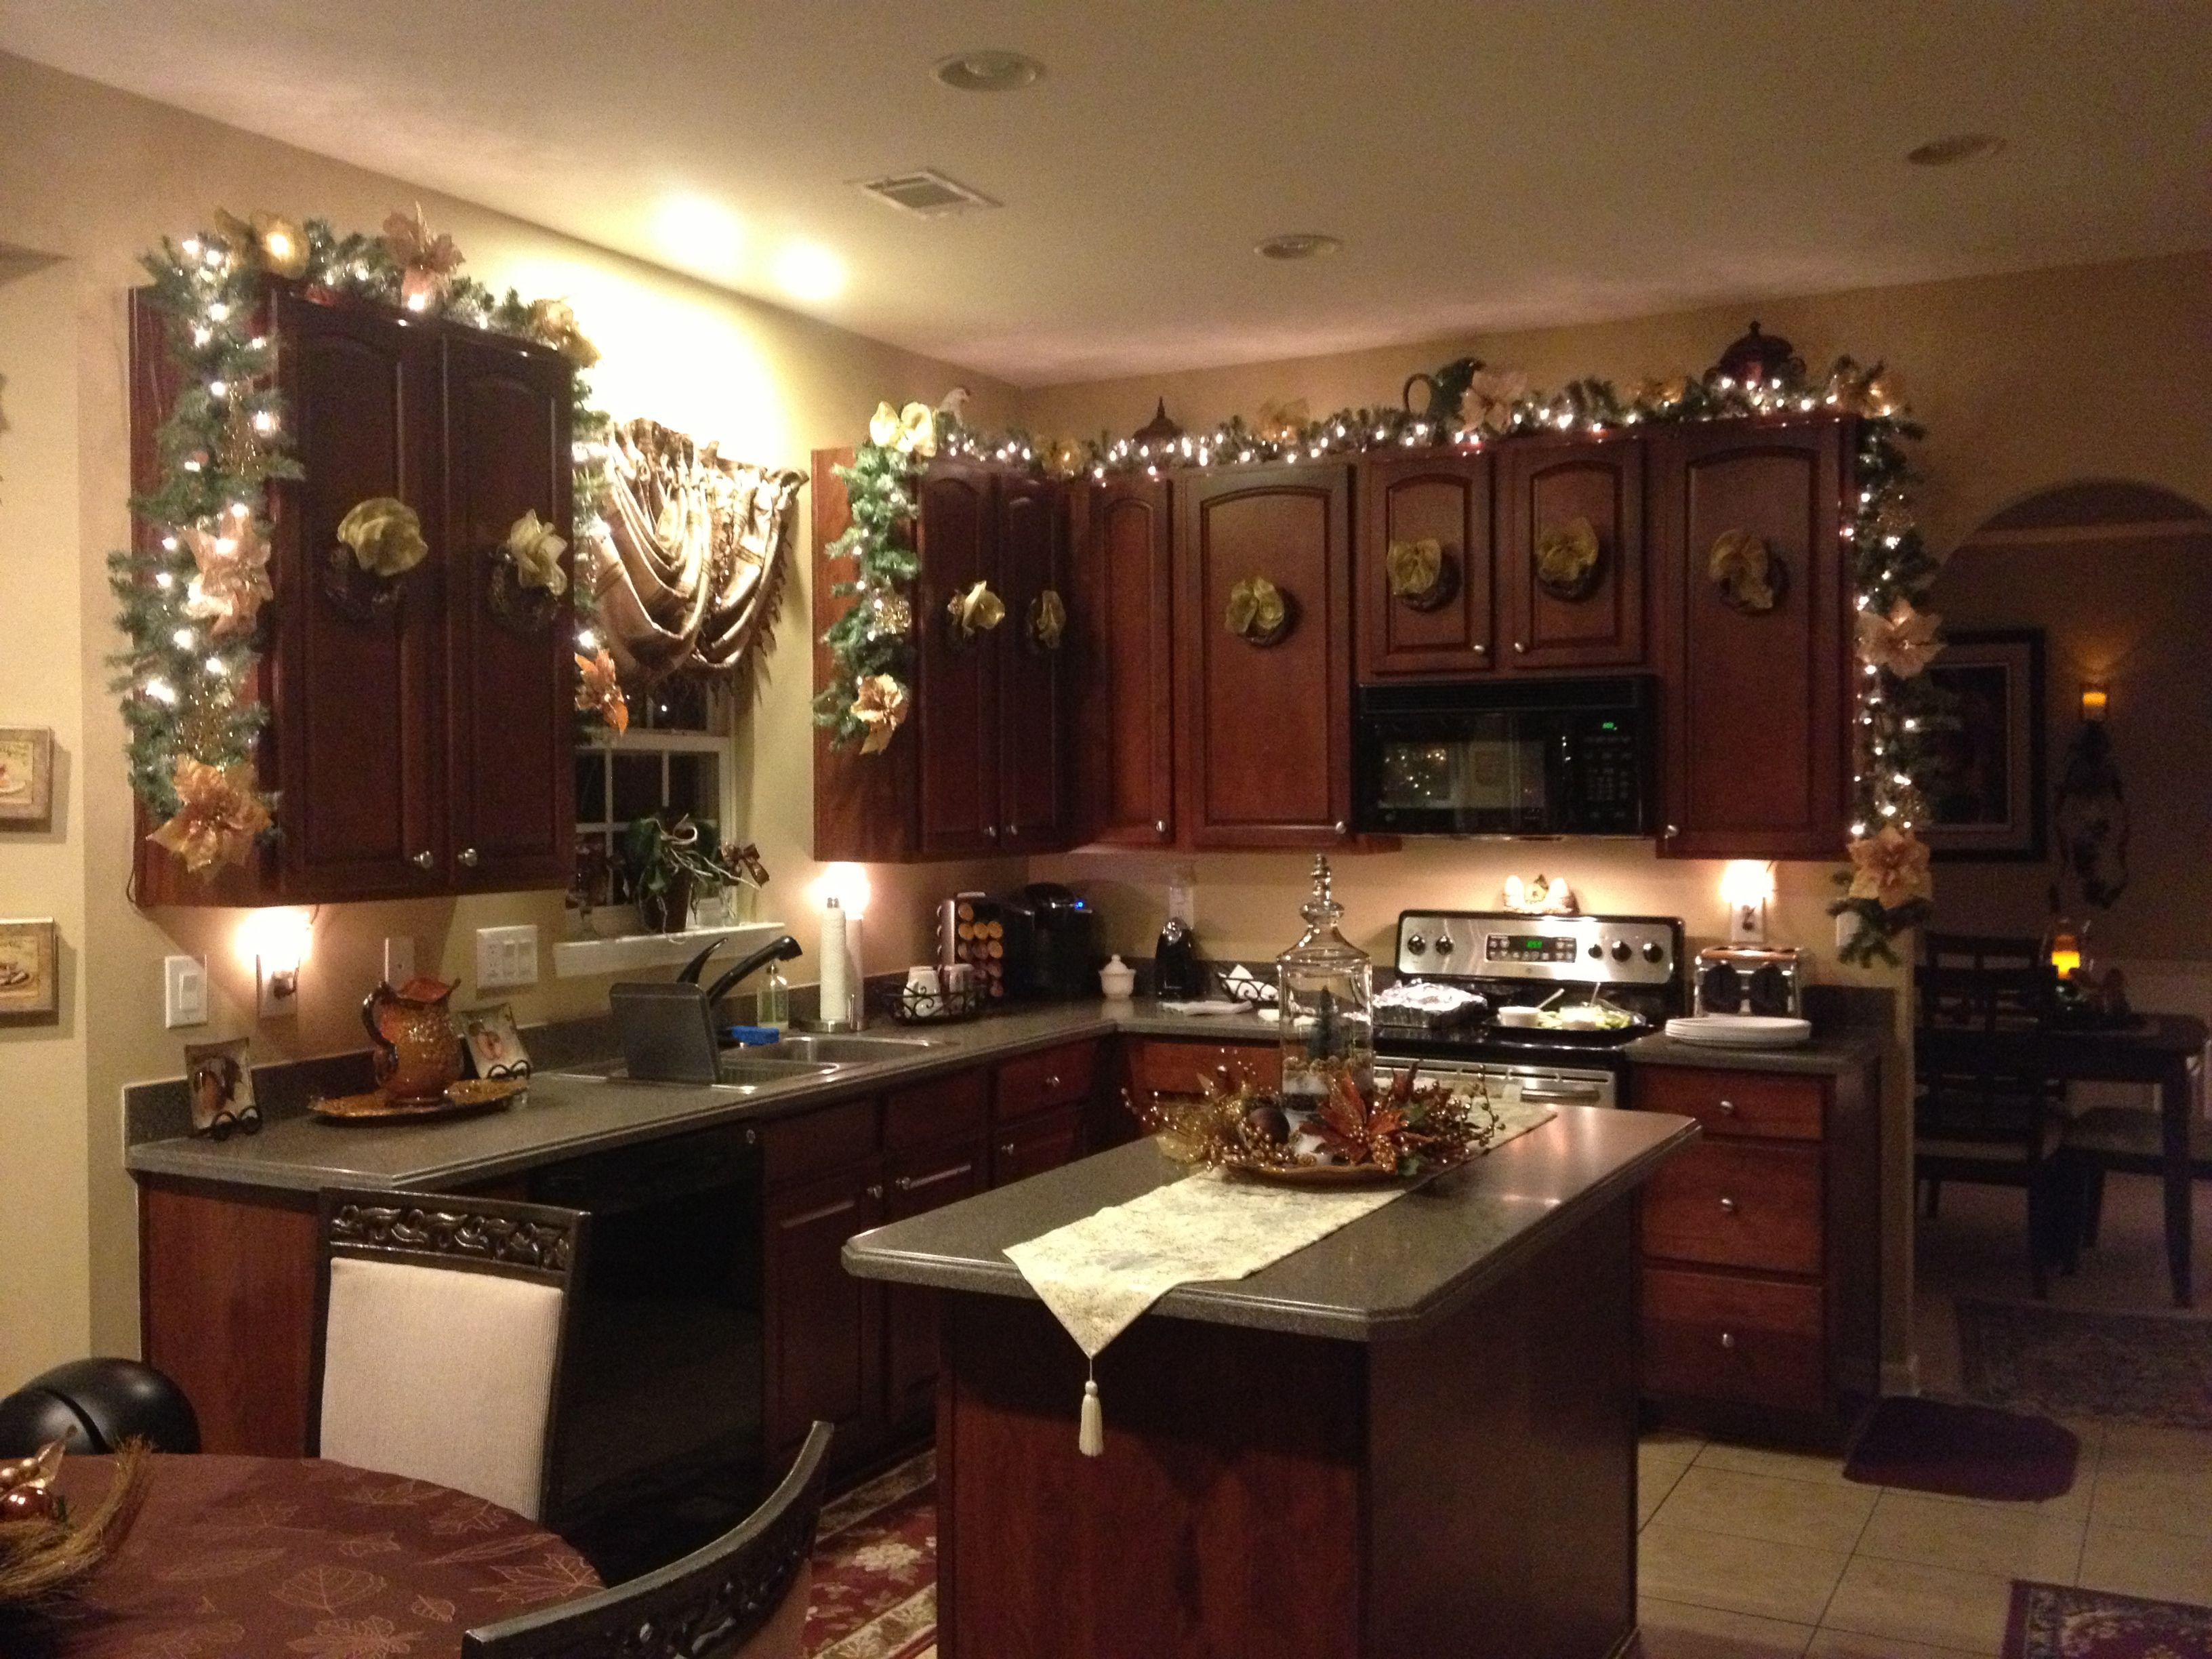 christmas kitchen christmas kitchen decor on kitchen cabinets xmas decor id=74076